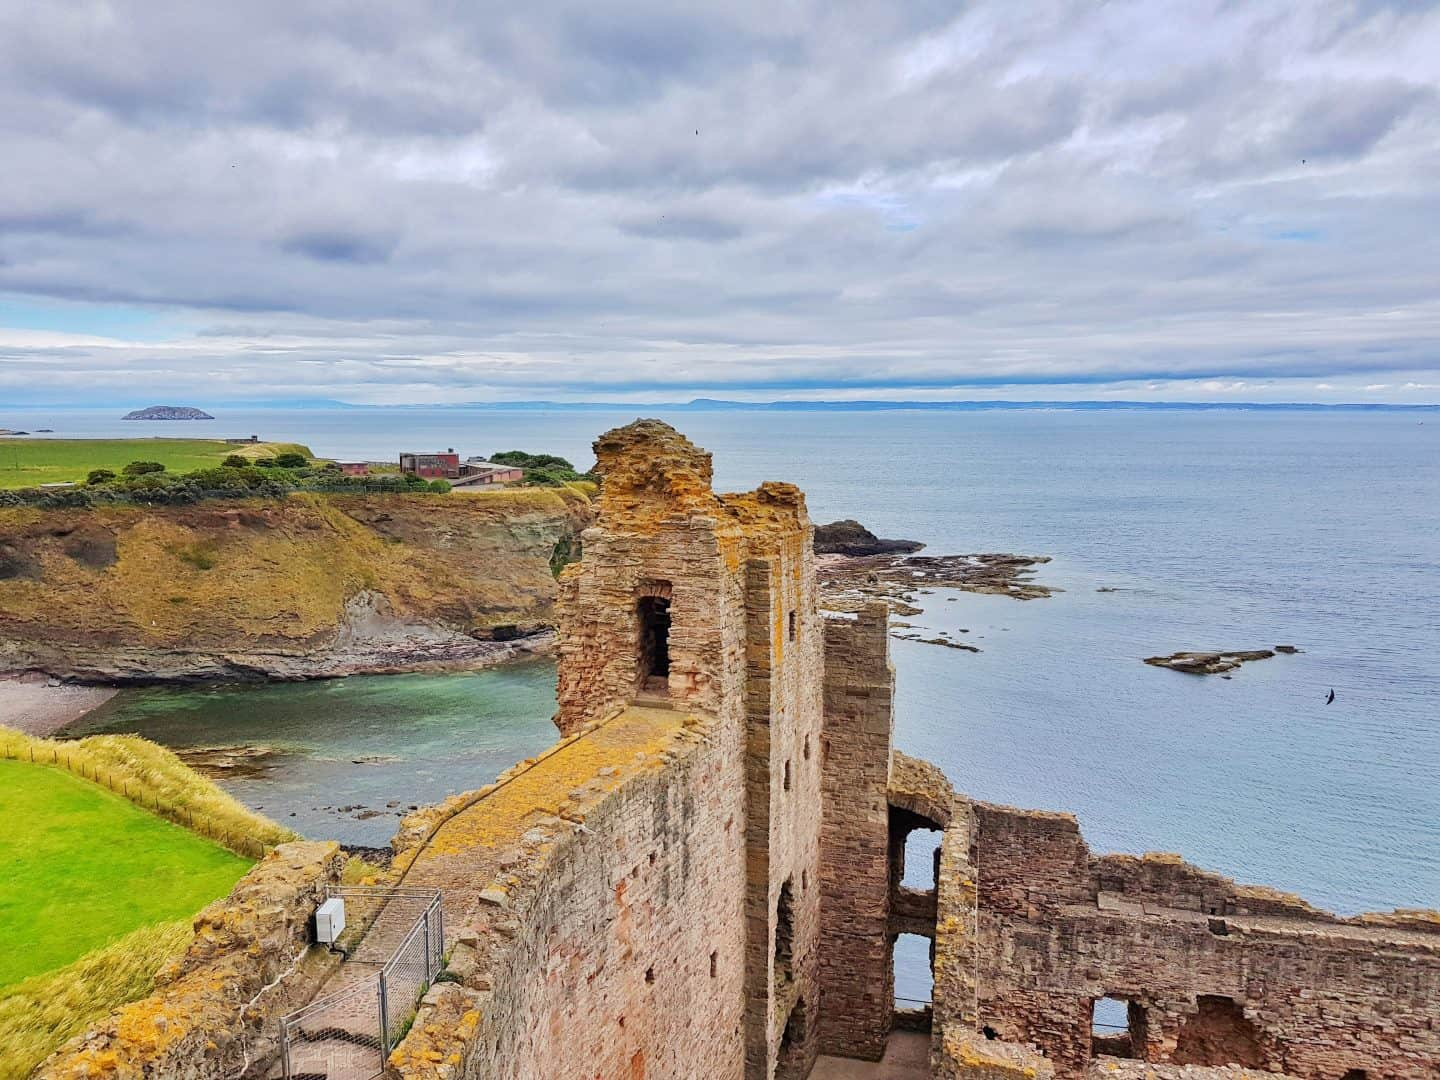 Dog friendly Tantallon Castle and Seacliff Beach, East Lothian